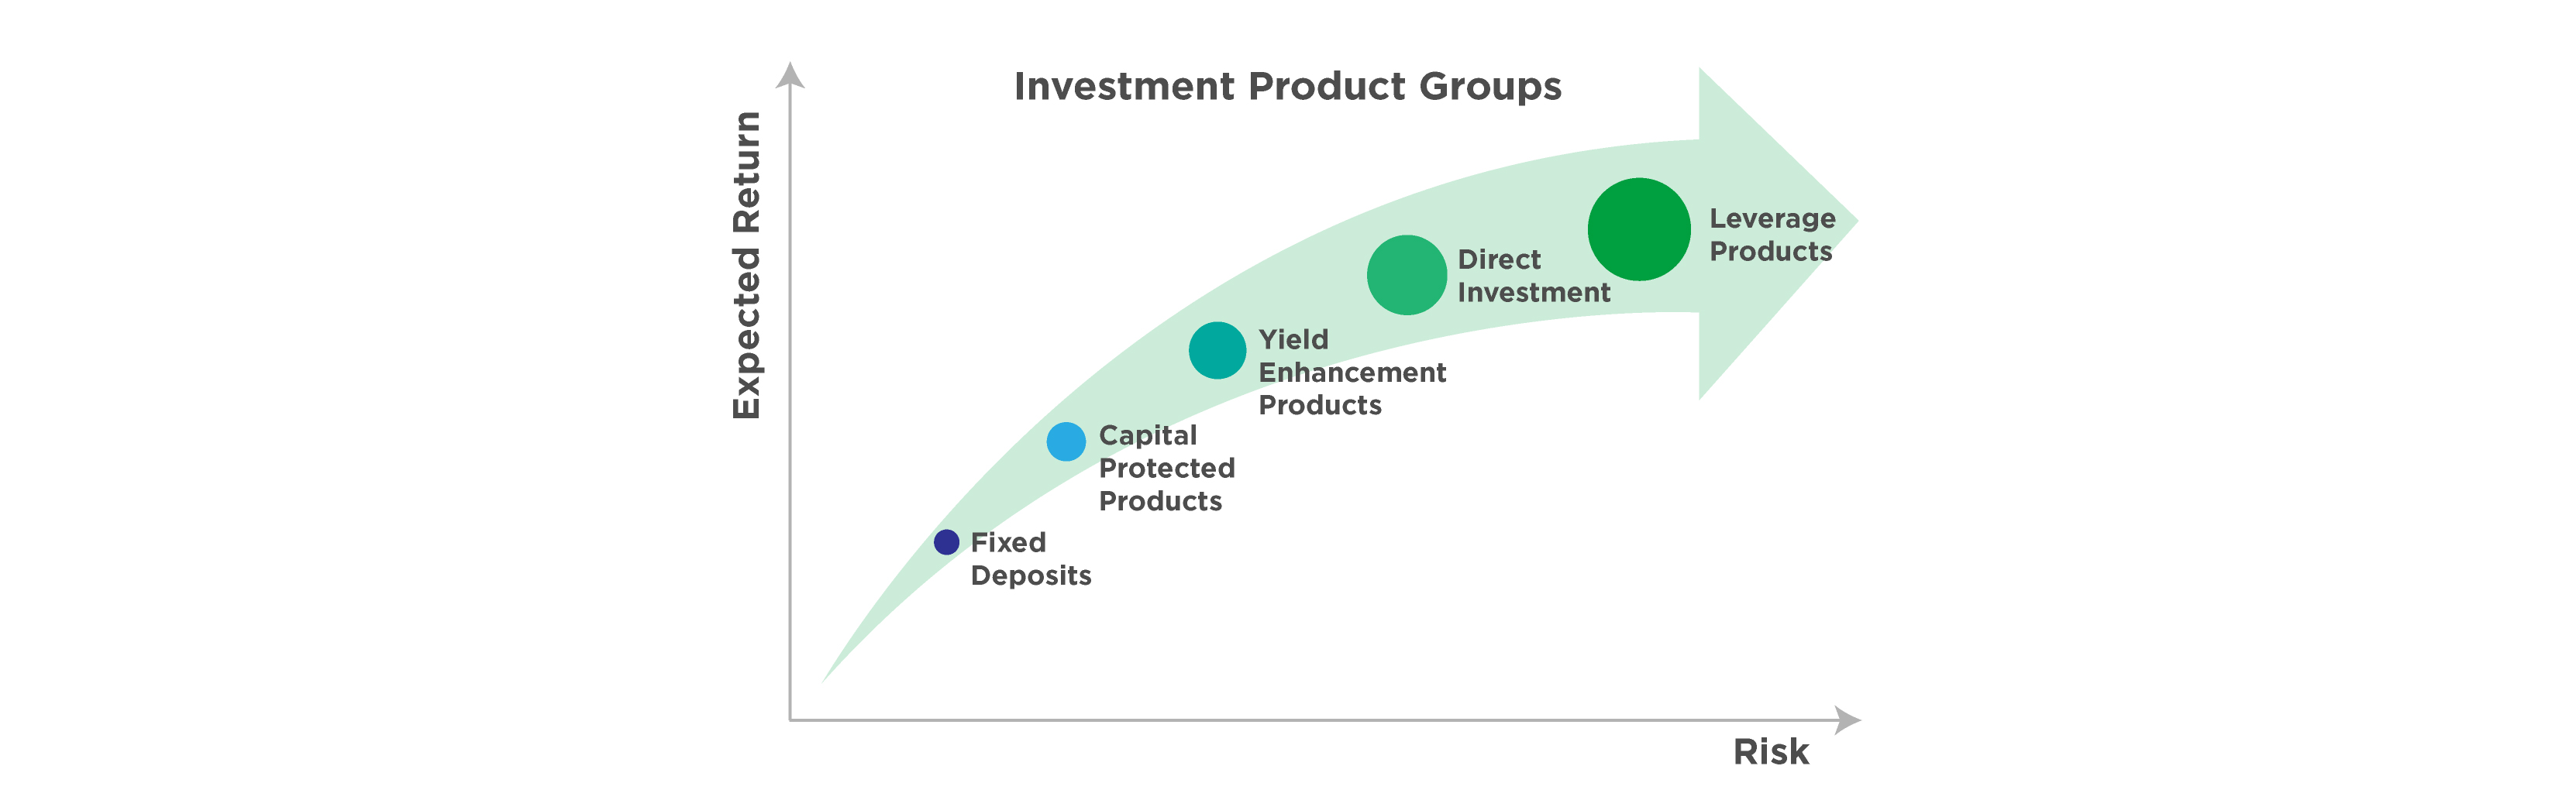 Investment risk and return starpoint investments llc